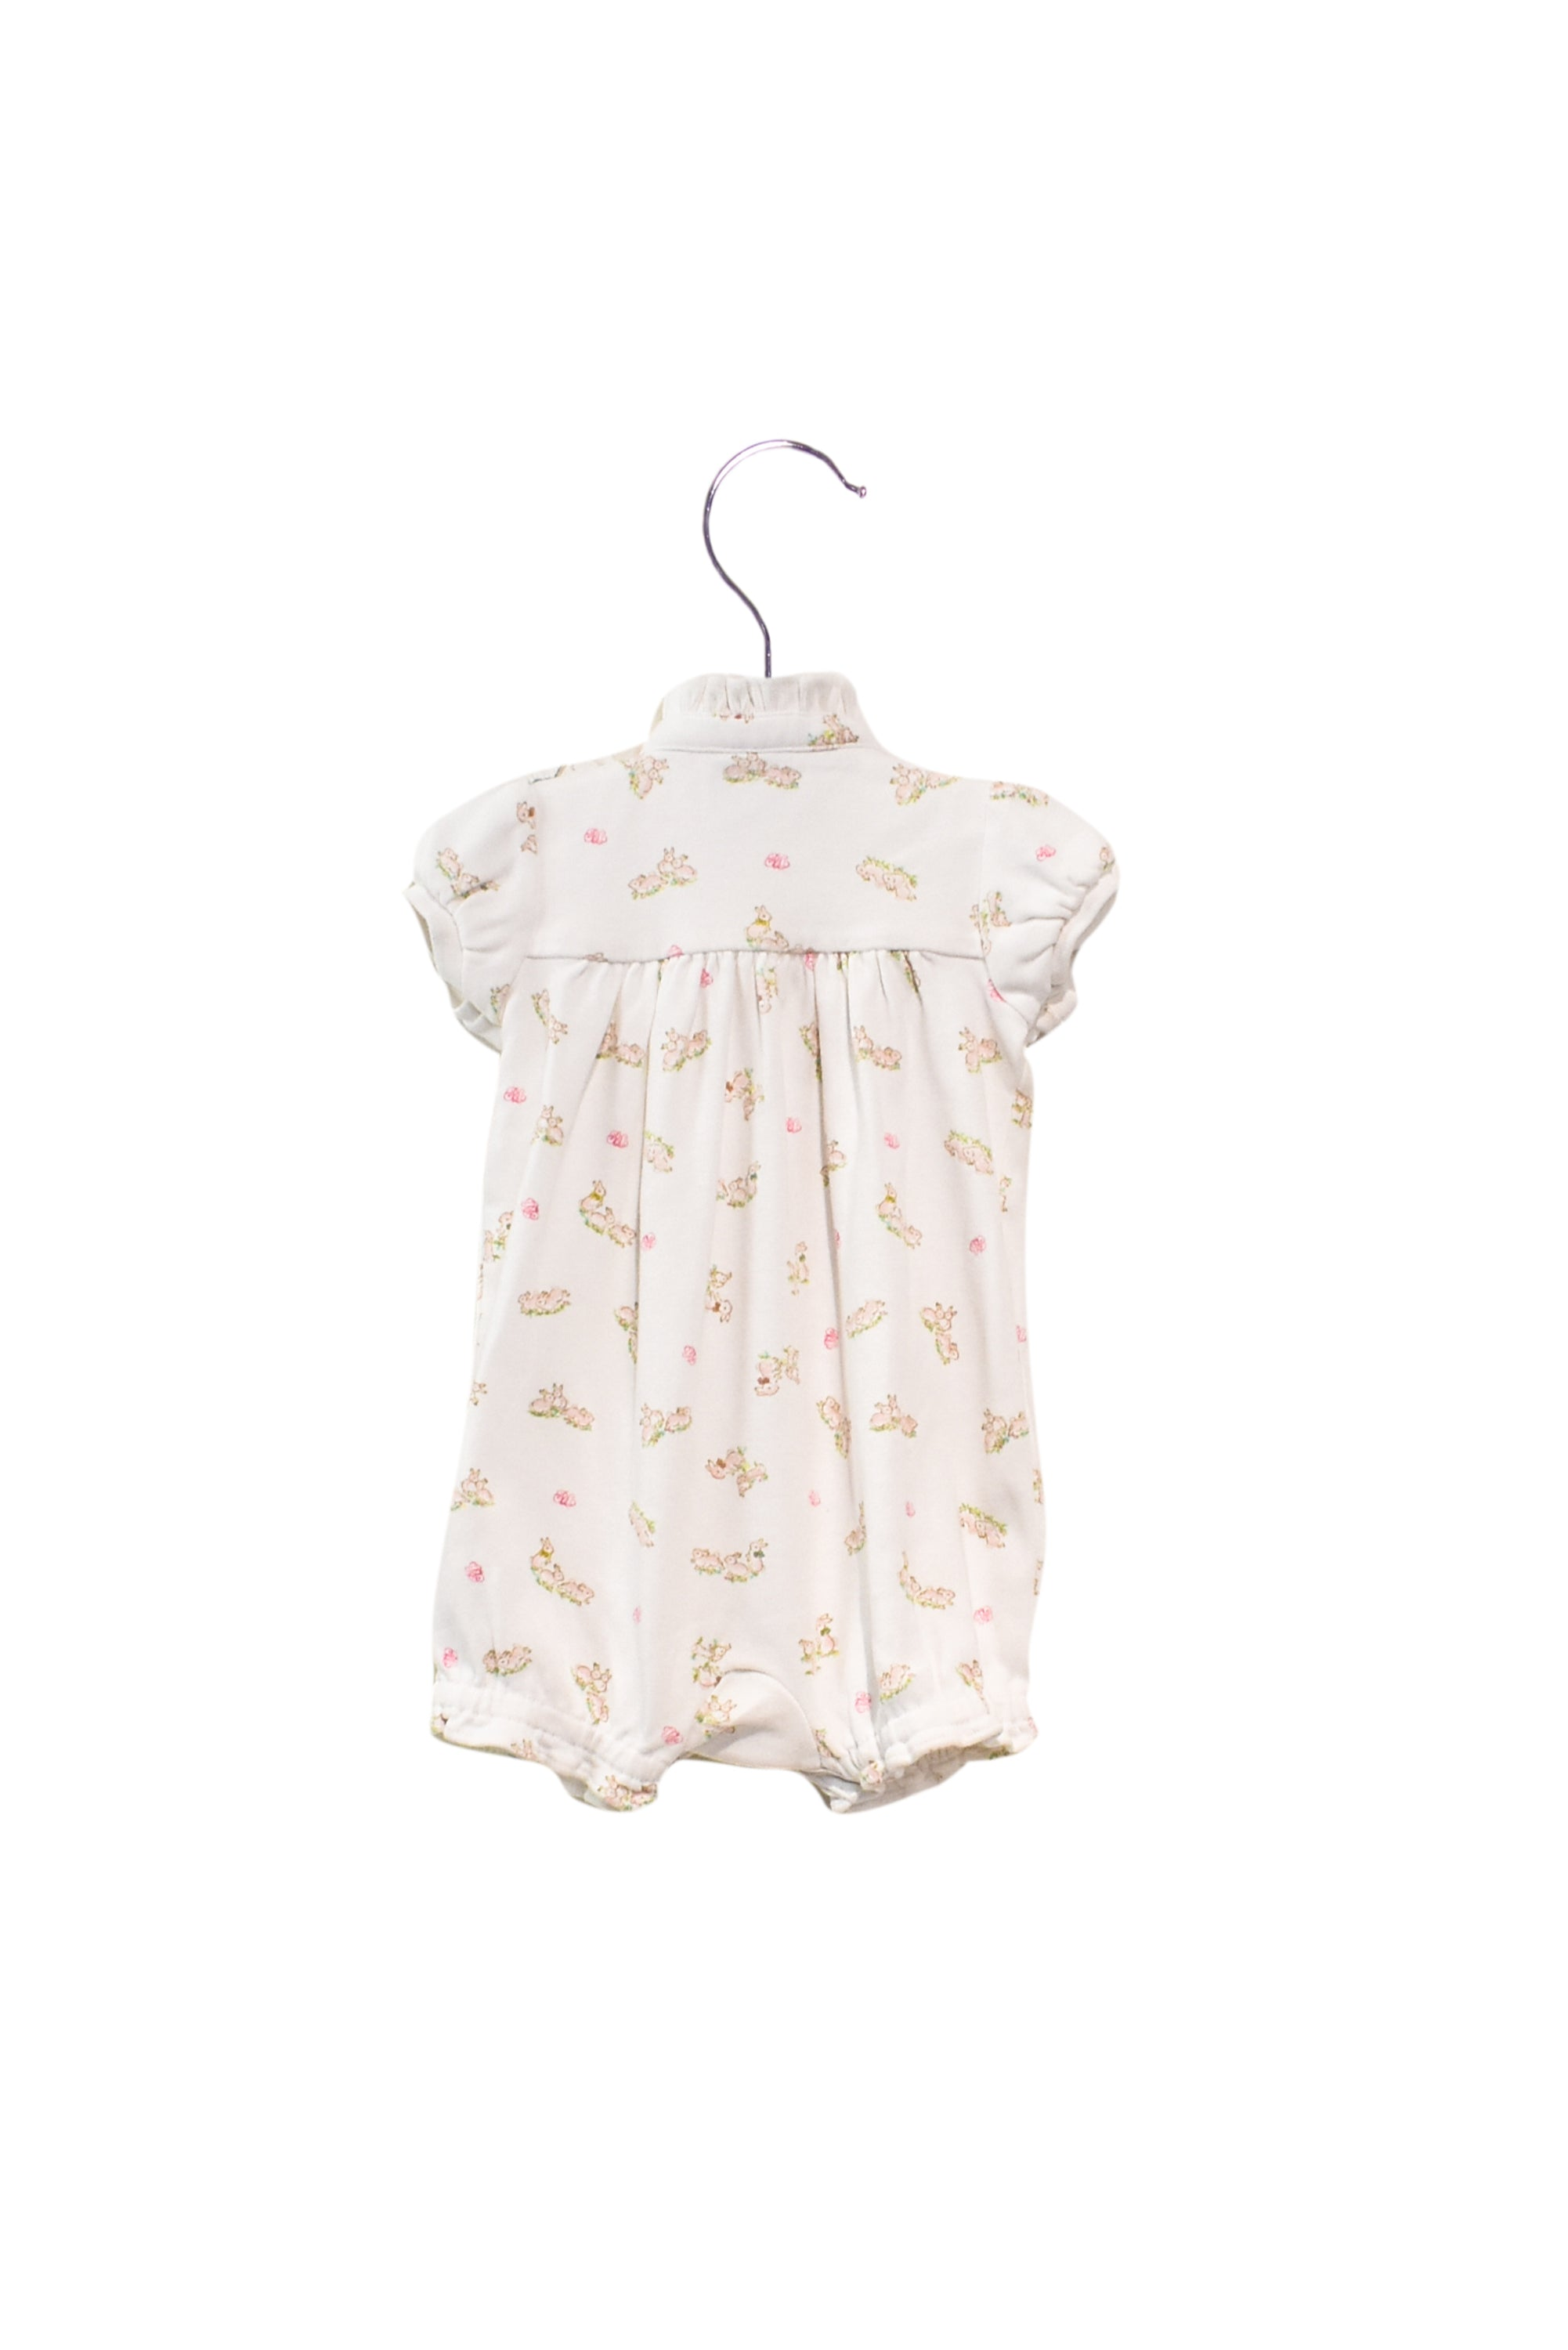 10028352 Ralph Lauren Baby~Romper 6M at Retykle